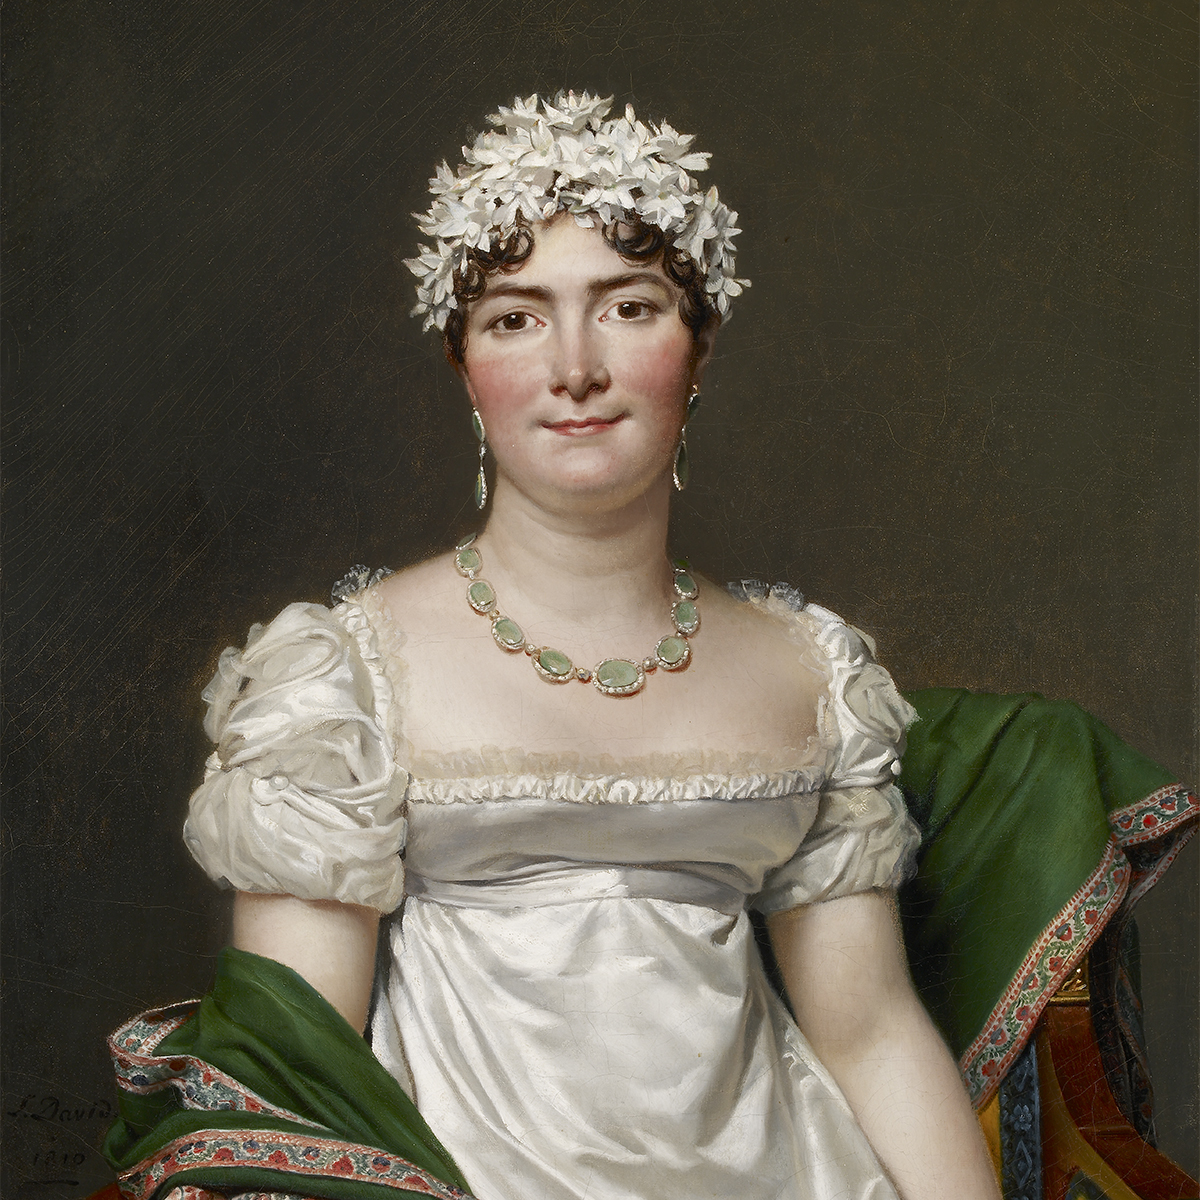 Oil painting of a seated woman in a white dress wearing a headpiece of white flowers